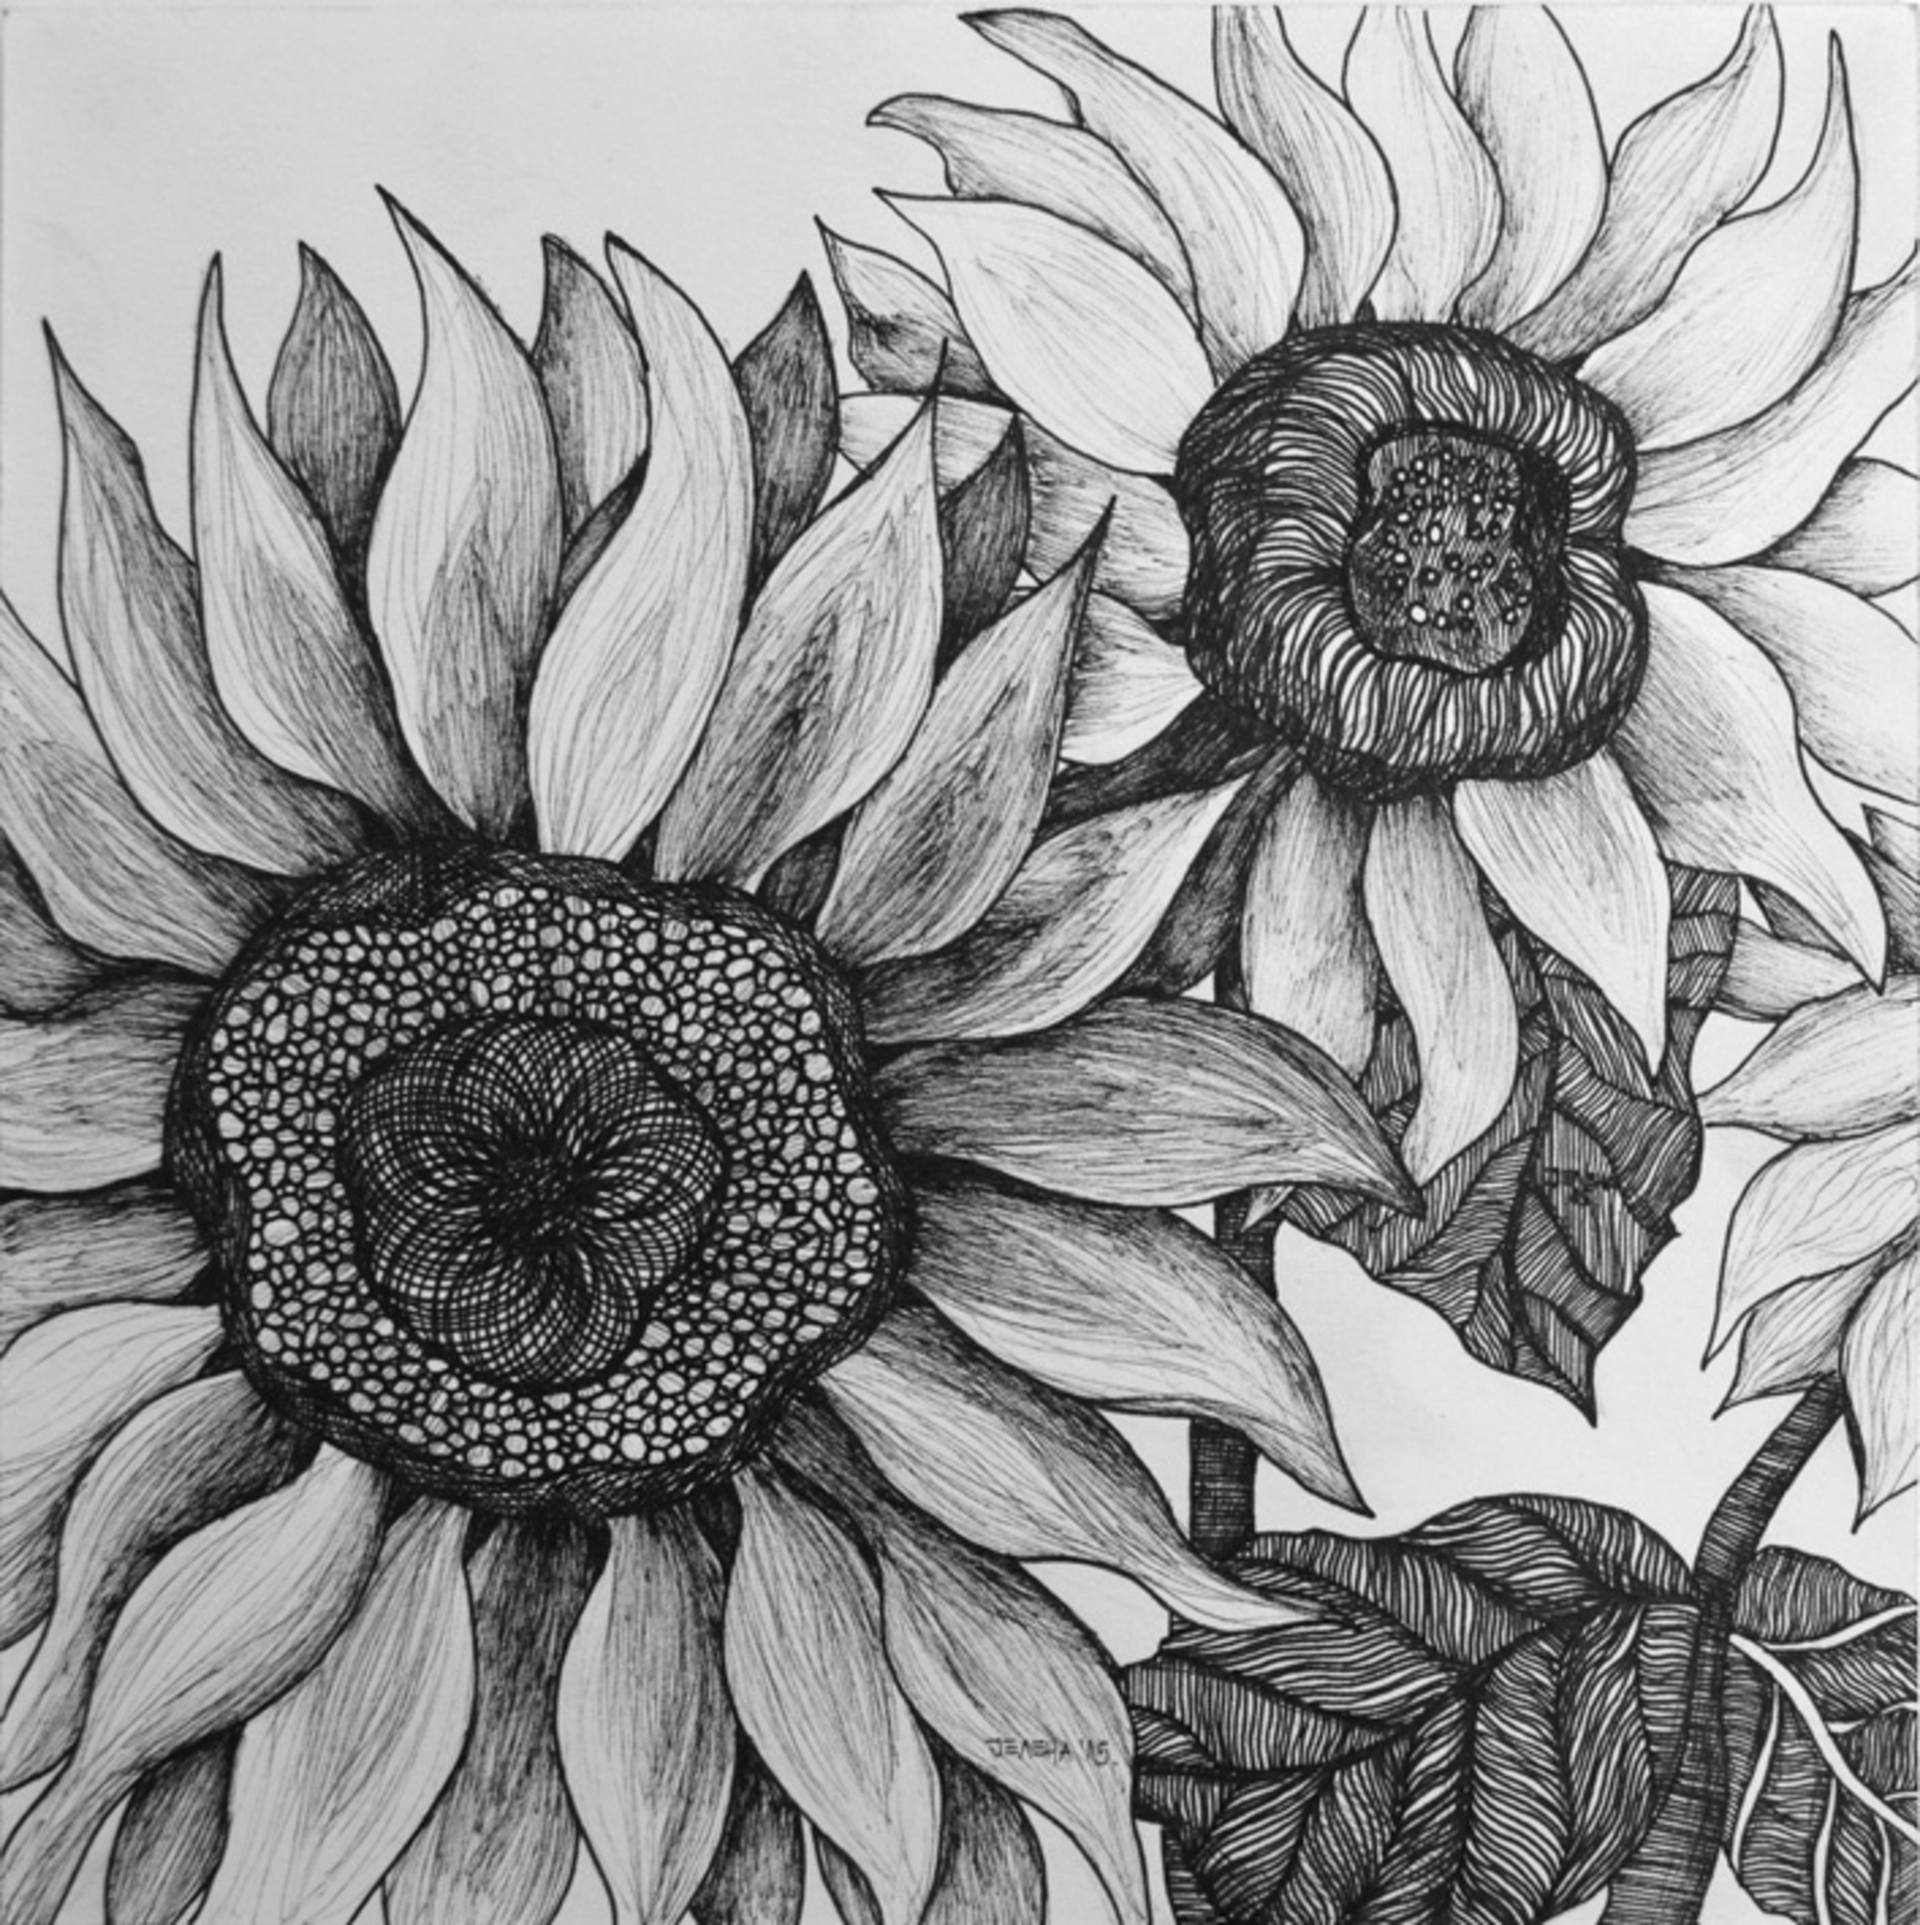 sunflower sketch single sunflower drawing by william beauchamp sketch sunflower